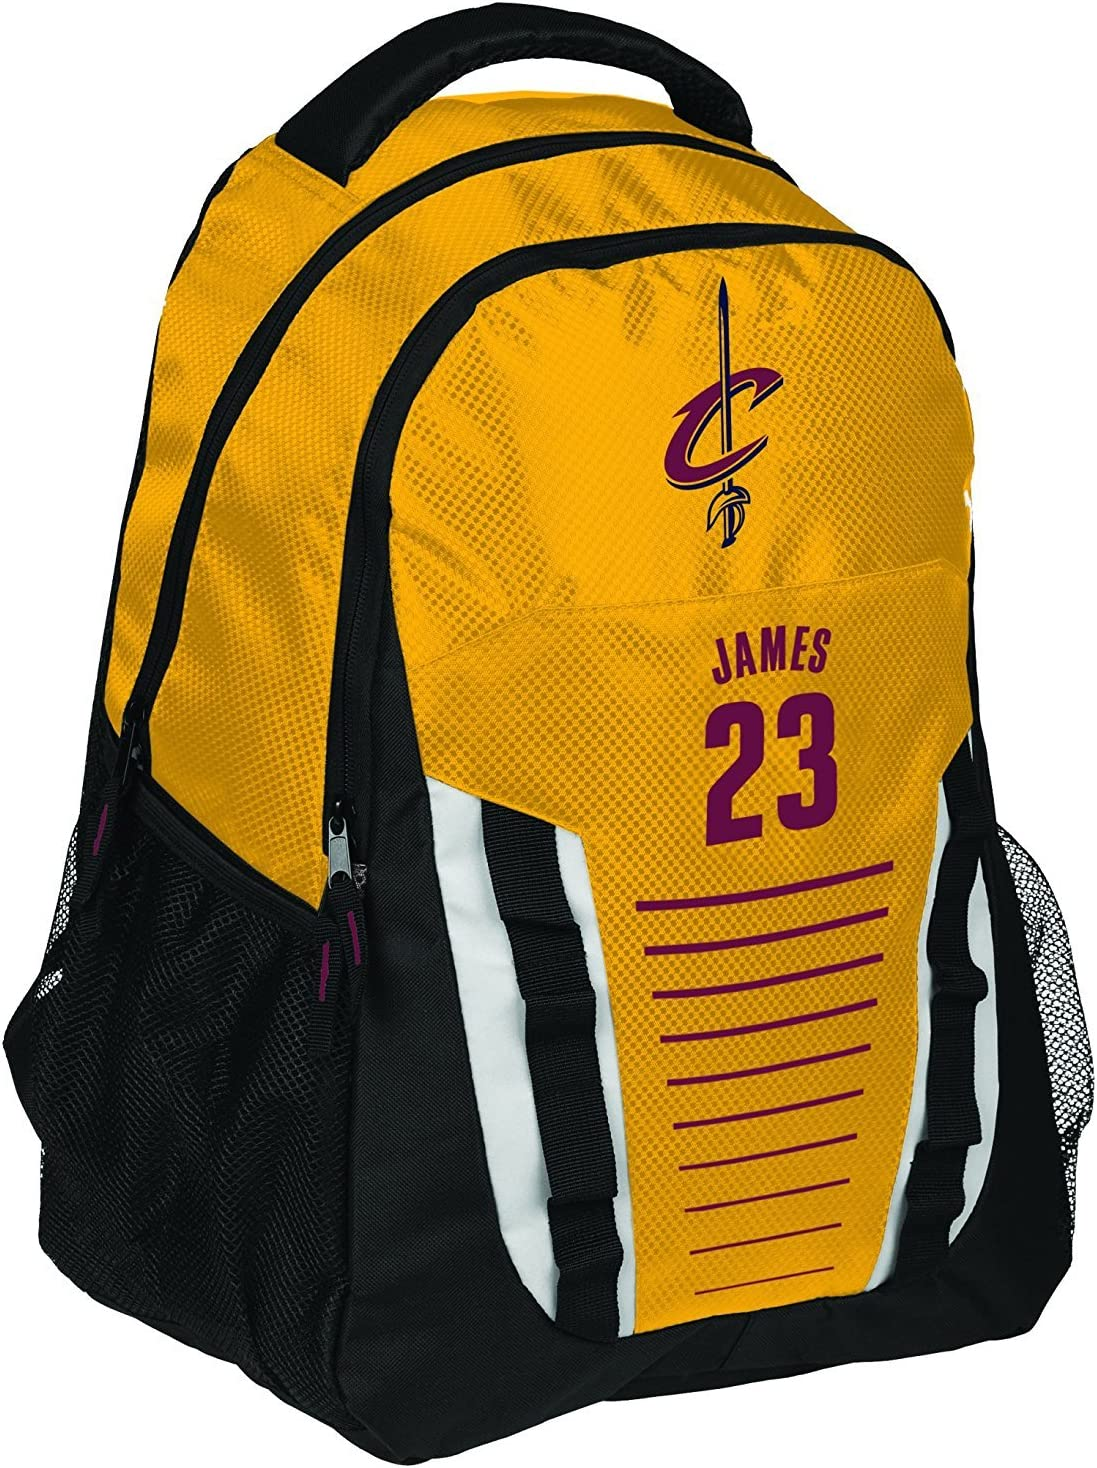 Cleveland A surprise price is realized Cavaliers Cheap SALE Start James L. Franchise Backpack #23 Stripe